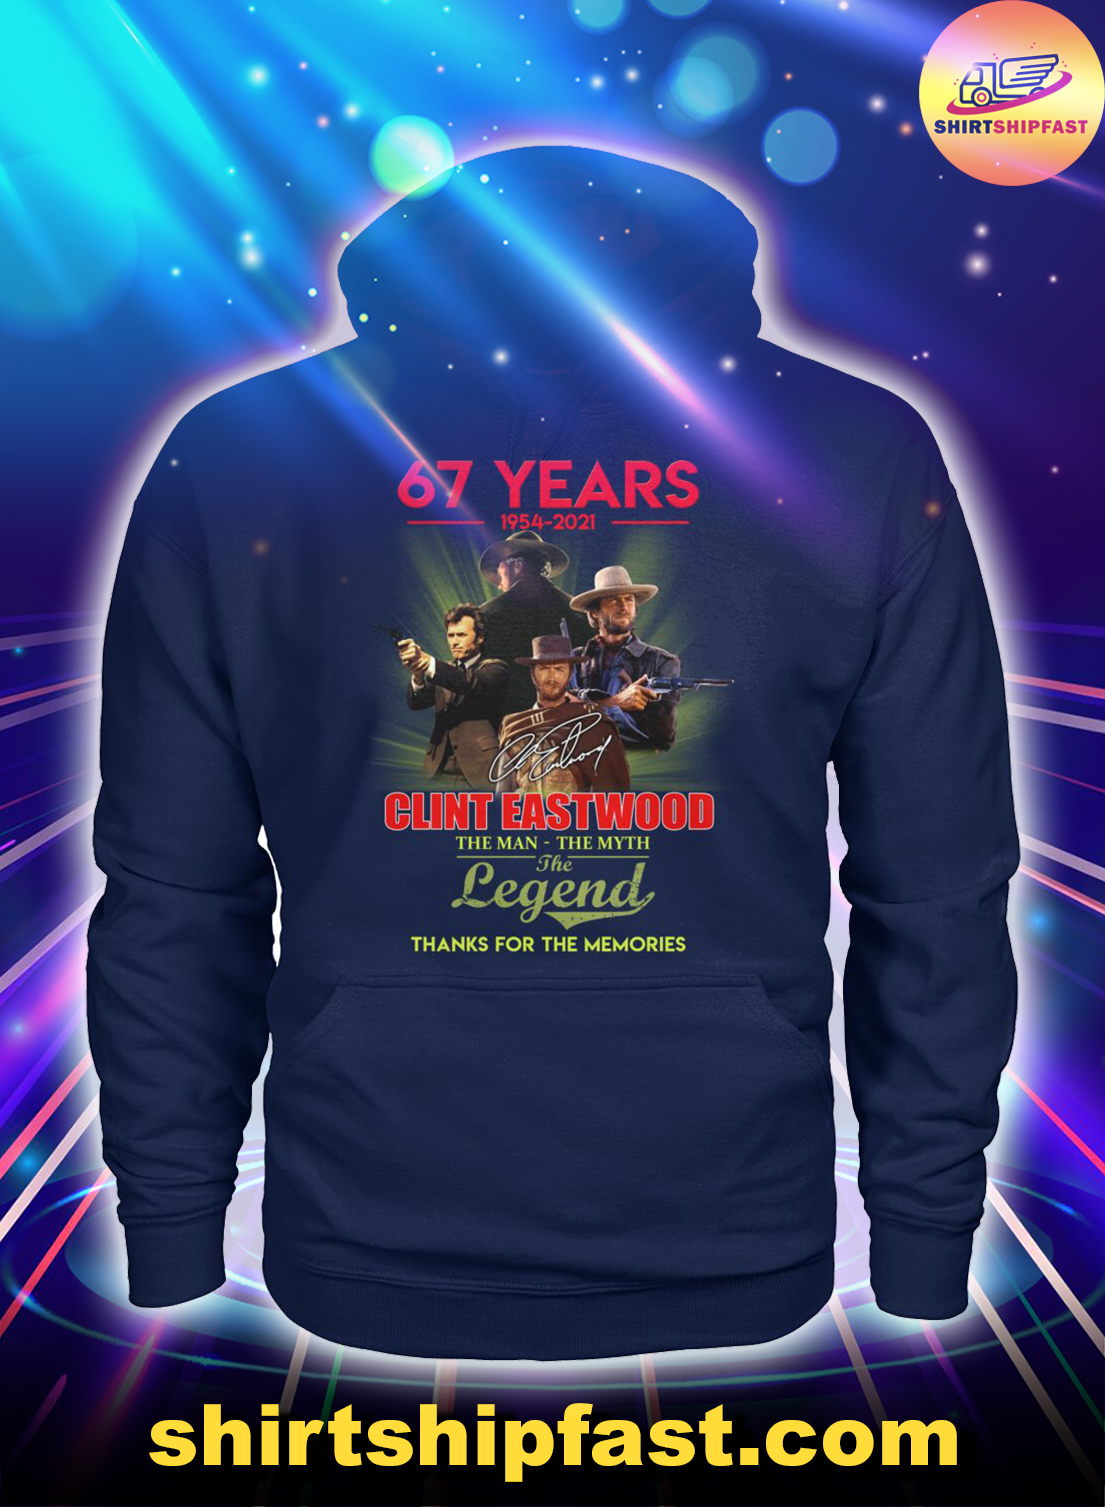 67-years-1954-2021-Clint-Eastwood-The-man-the-myth-the-legend-hoodie -1